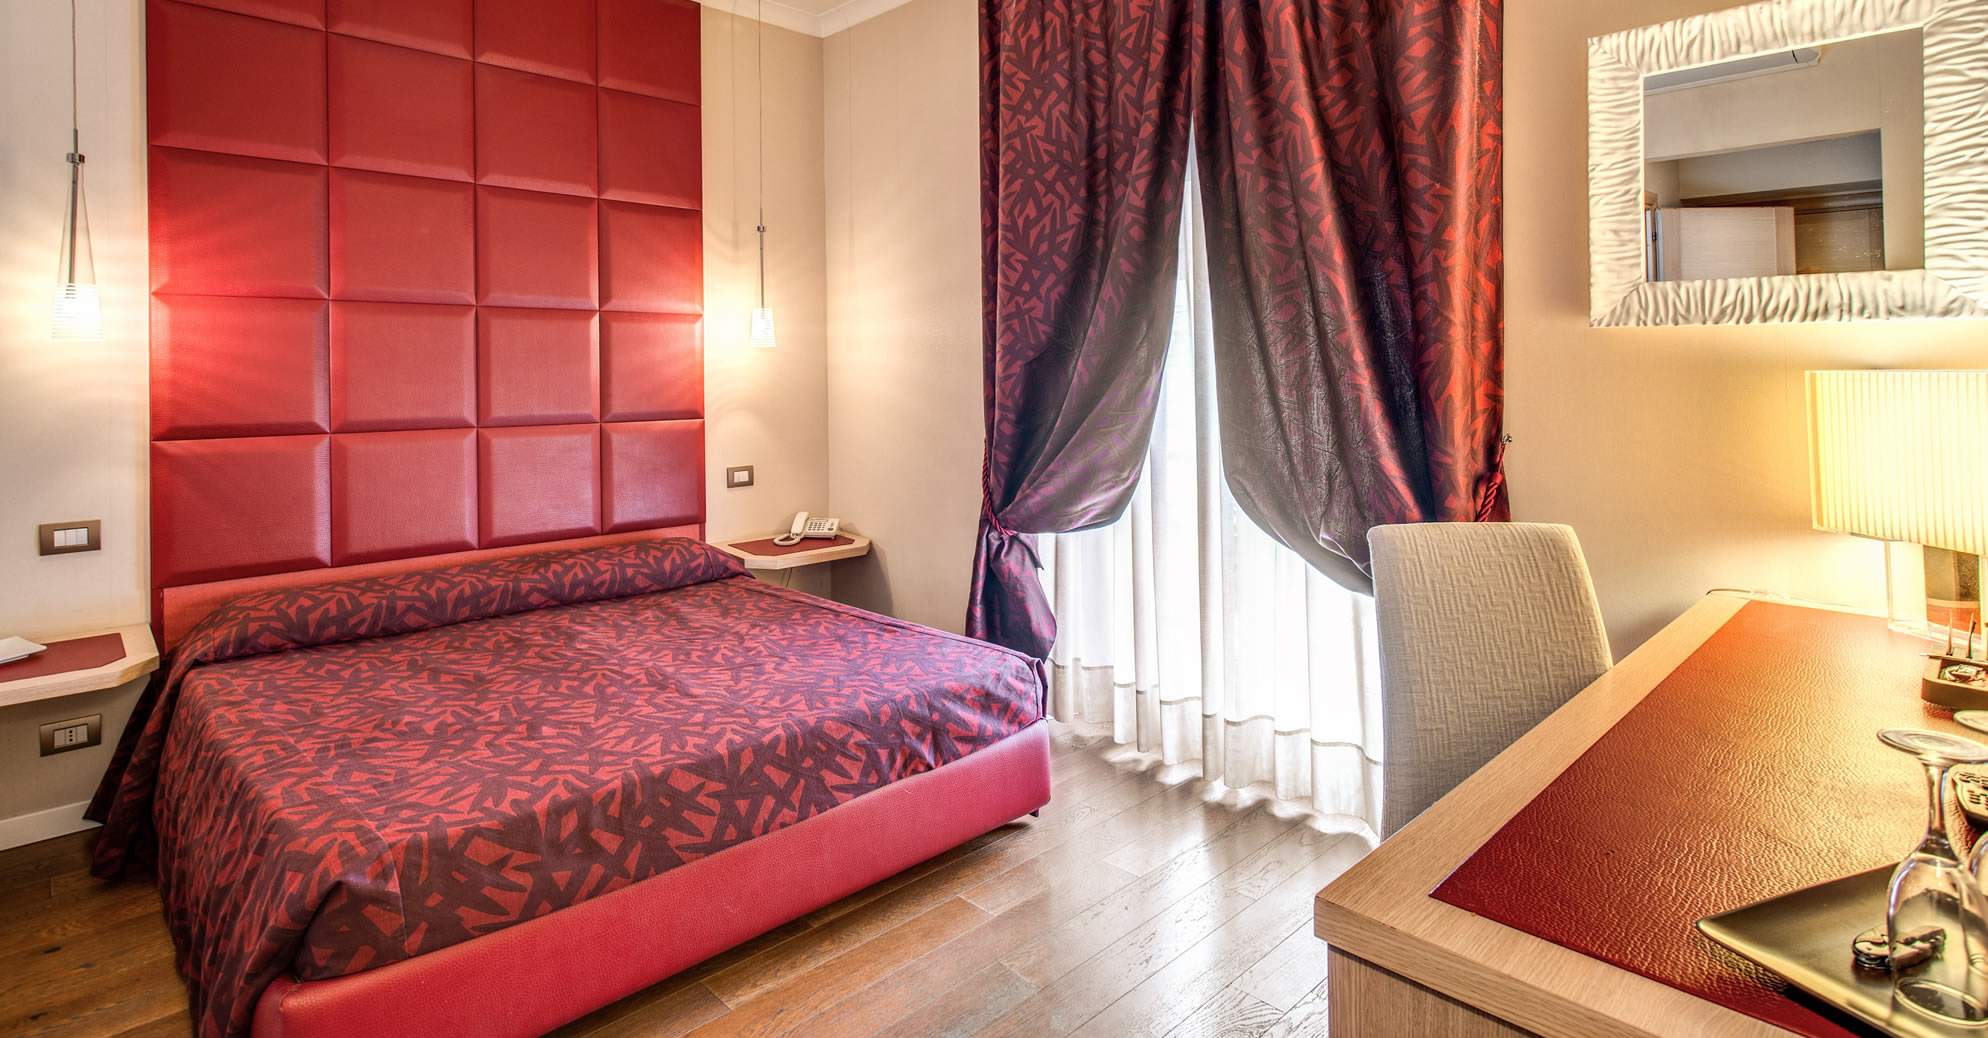 Boutique guesthouse roma official site four star city for Boutique hotel